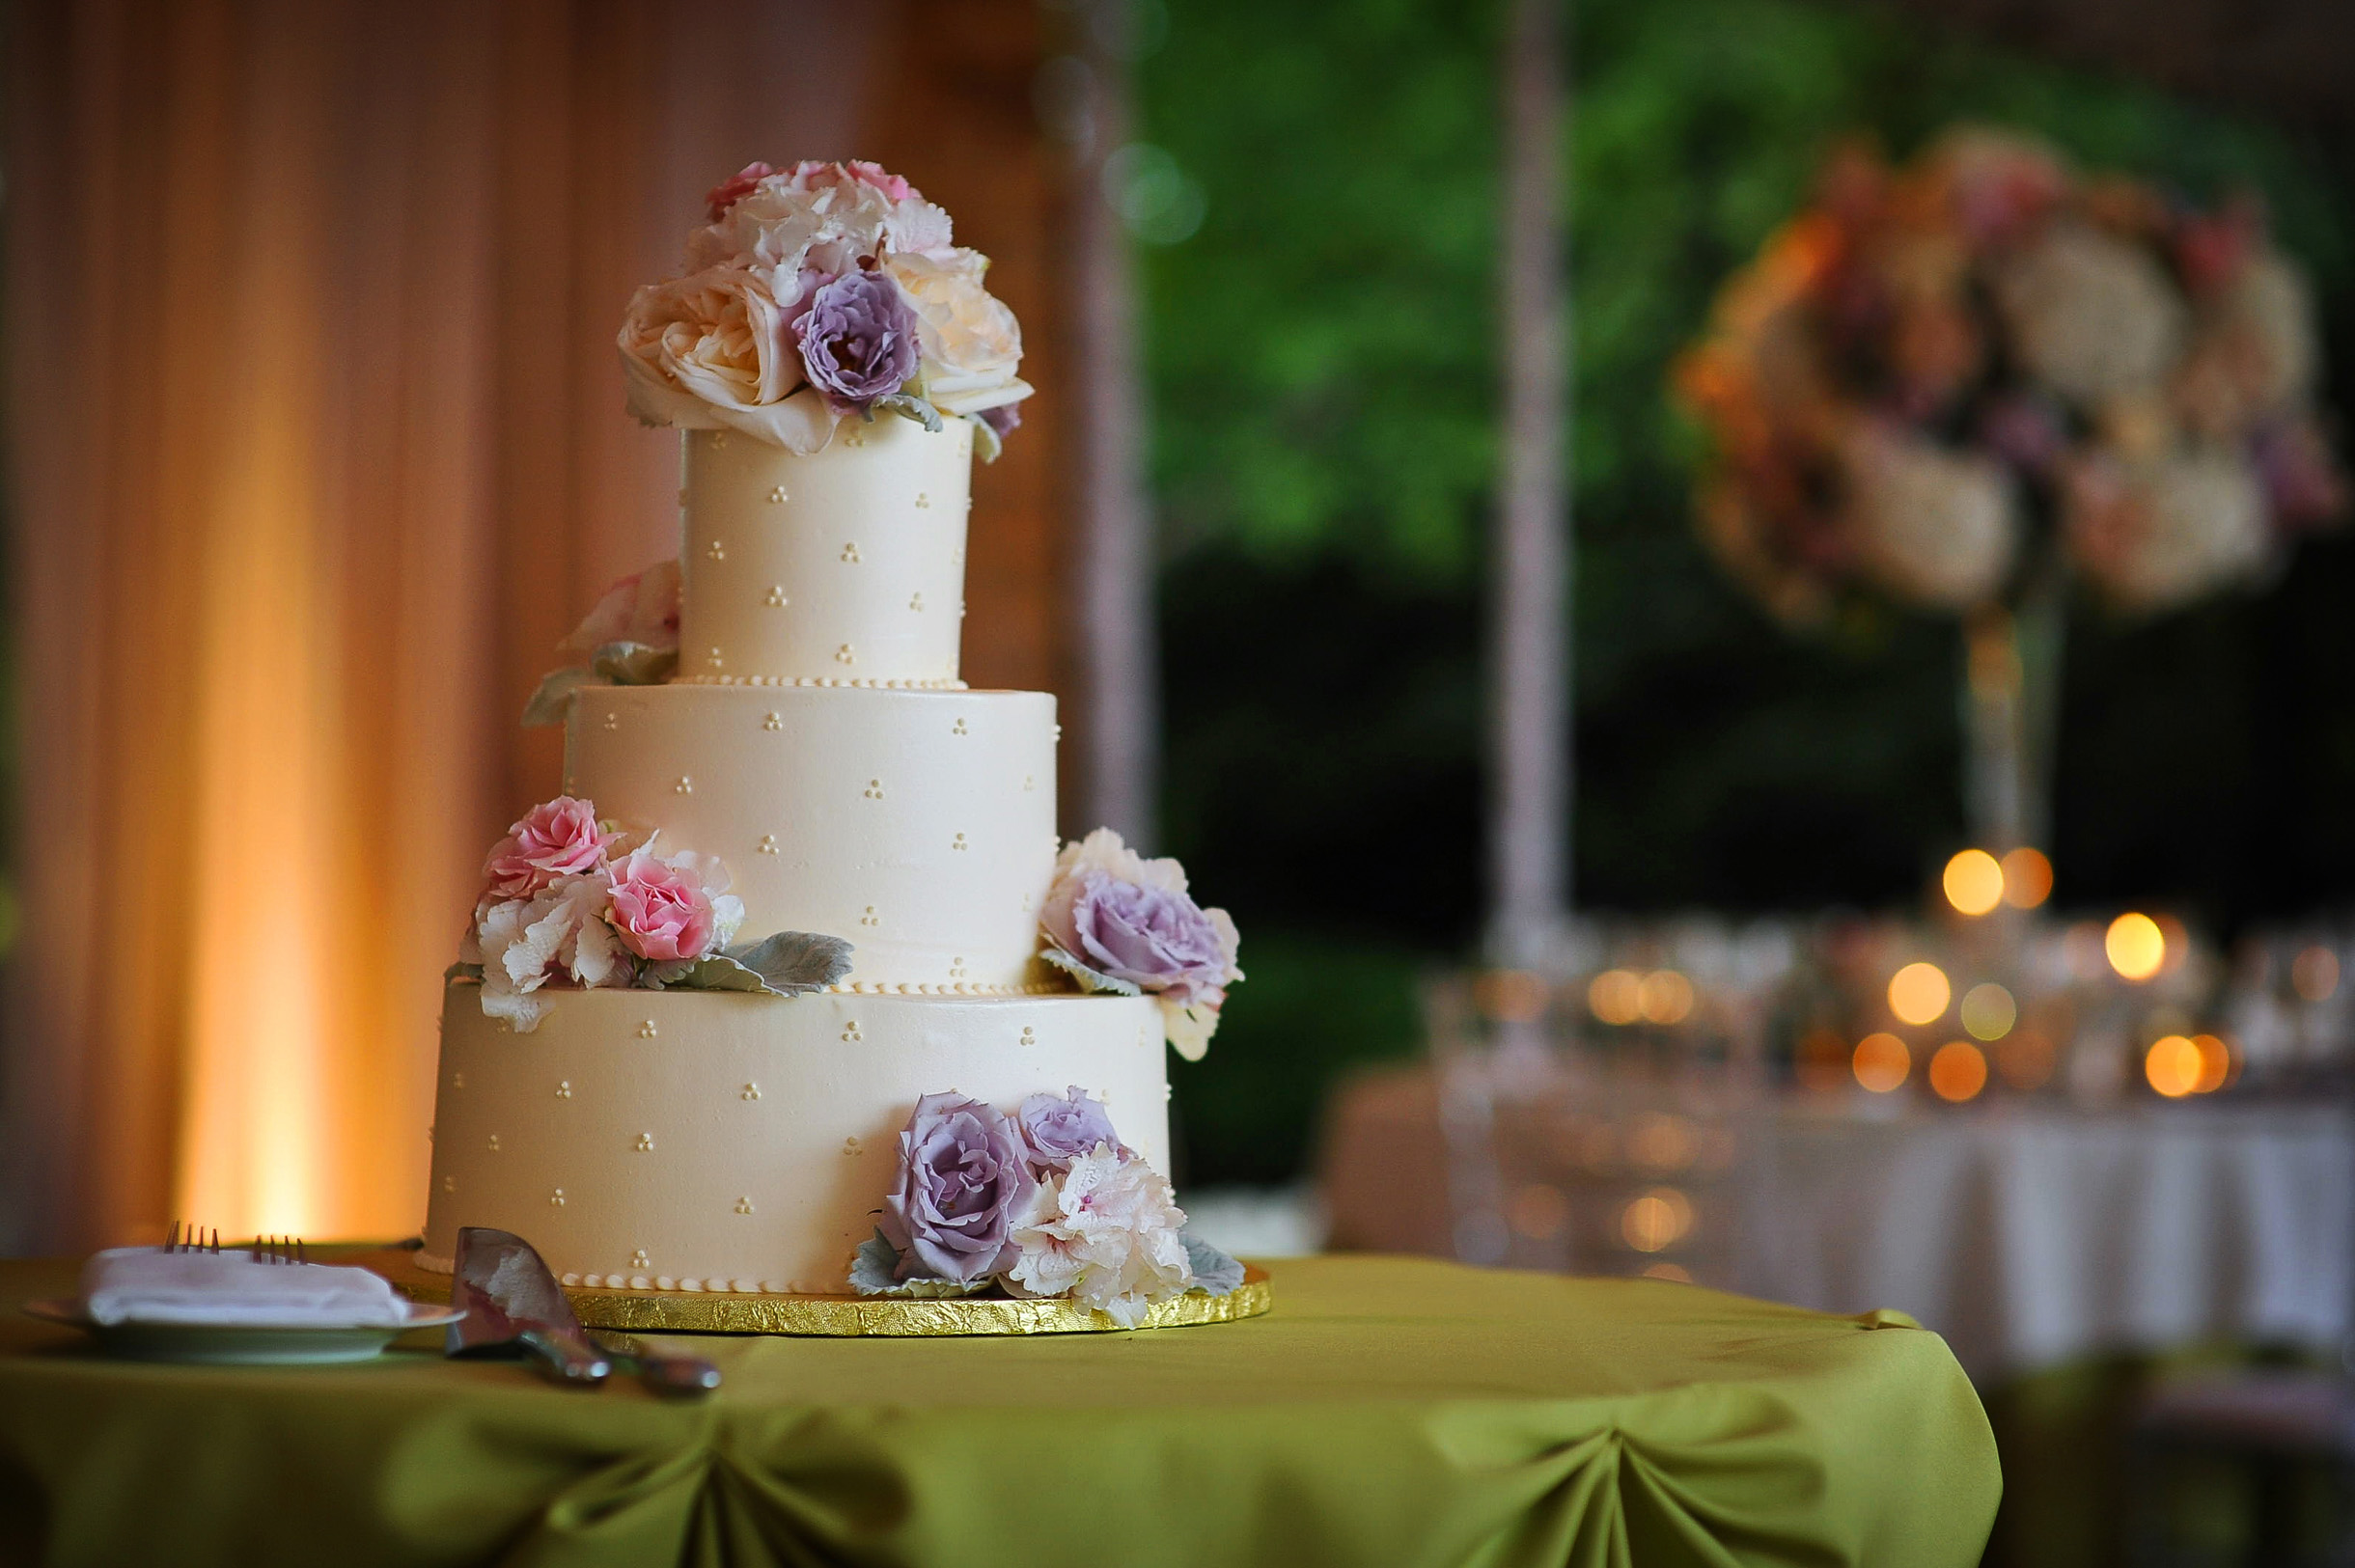 Colorful wedding cake at reception at the Chicago Botanic Garden